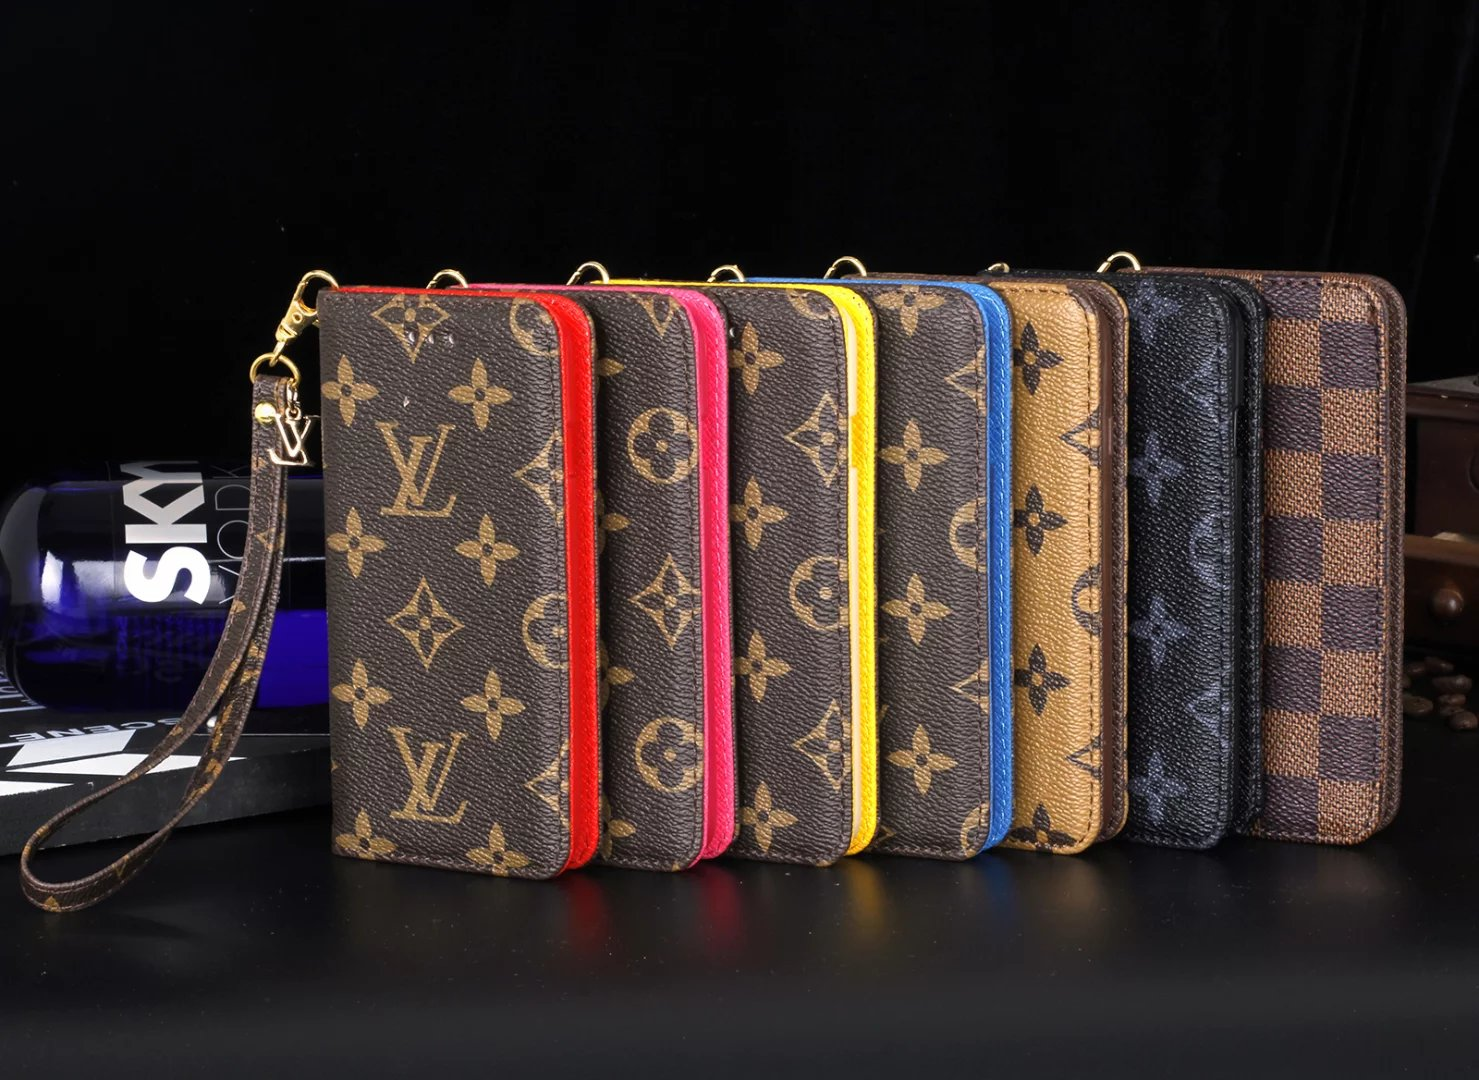 eigene iphone hülle iphone hülle selber machen Louis Vuitton iphone 8 Plus hüllen handyhüllen für htc one mini iphone 8 Plus zoll iphone tasche 8 Pluslbst gestalten eigene iphone hülle erstellen flip ca8 Plus 8 Pluslbst gestalten handyhülle online gestalten